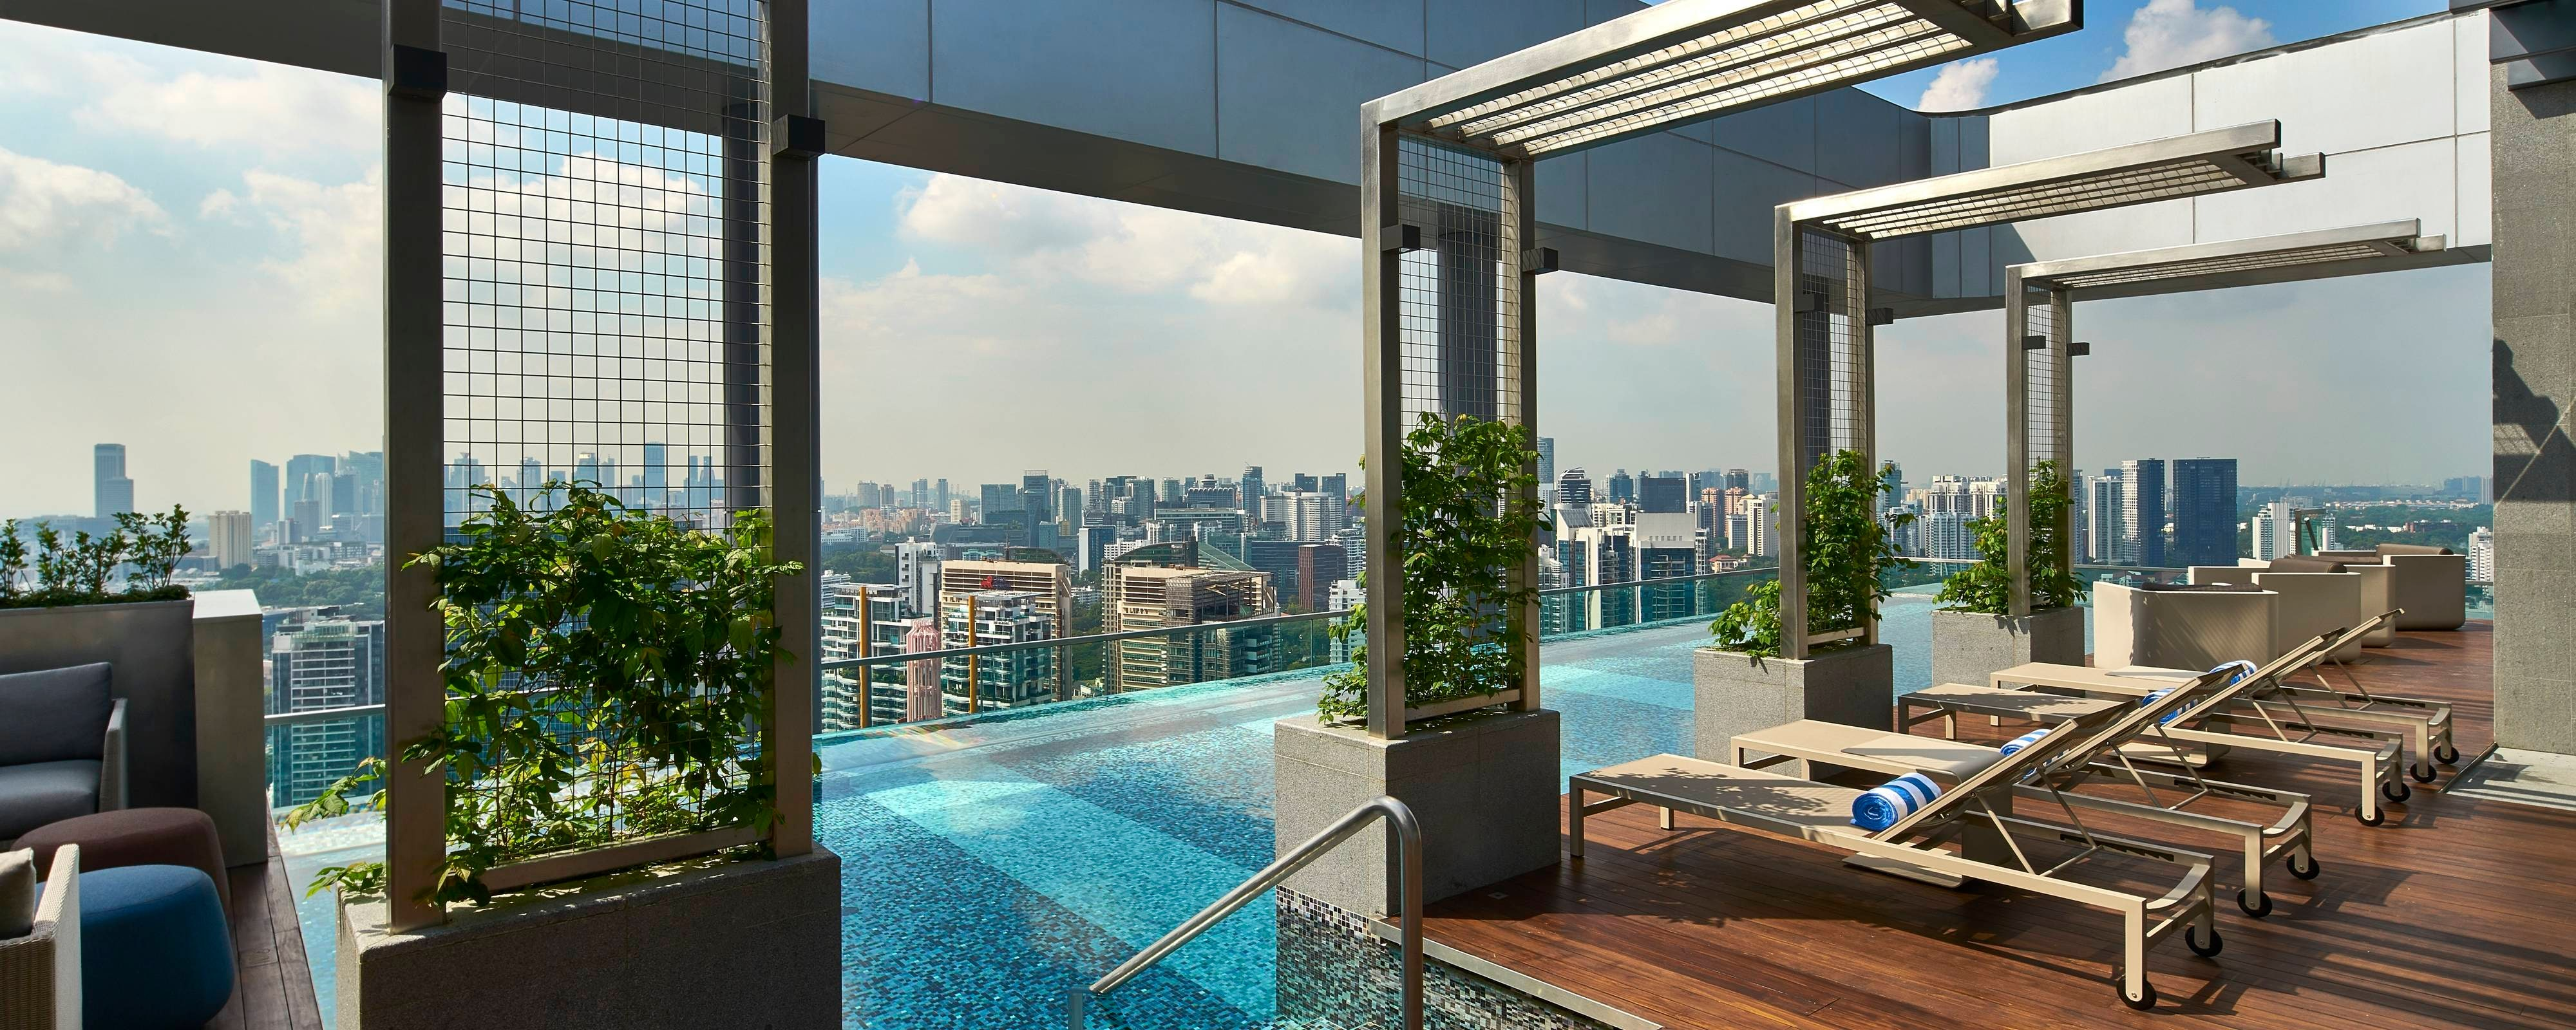 Orchard Hotel Singapore - Millennium Hotels and Resorts